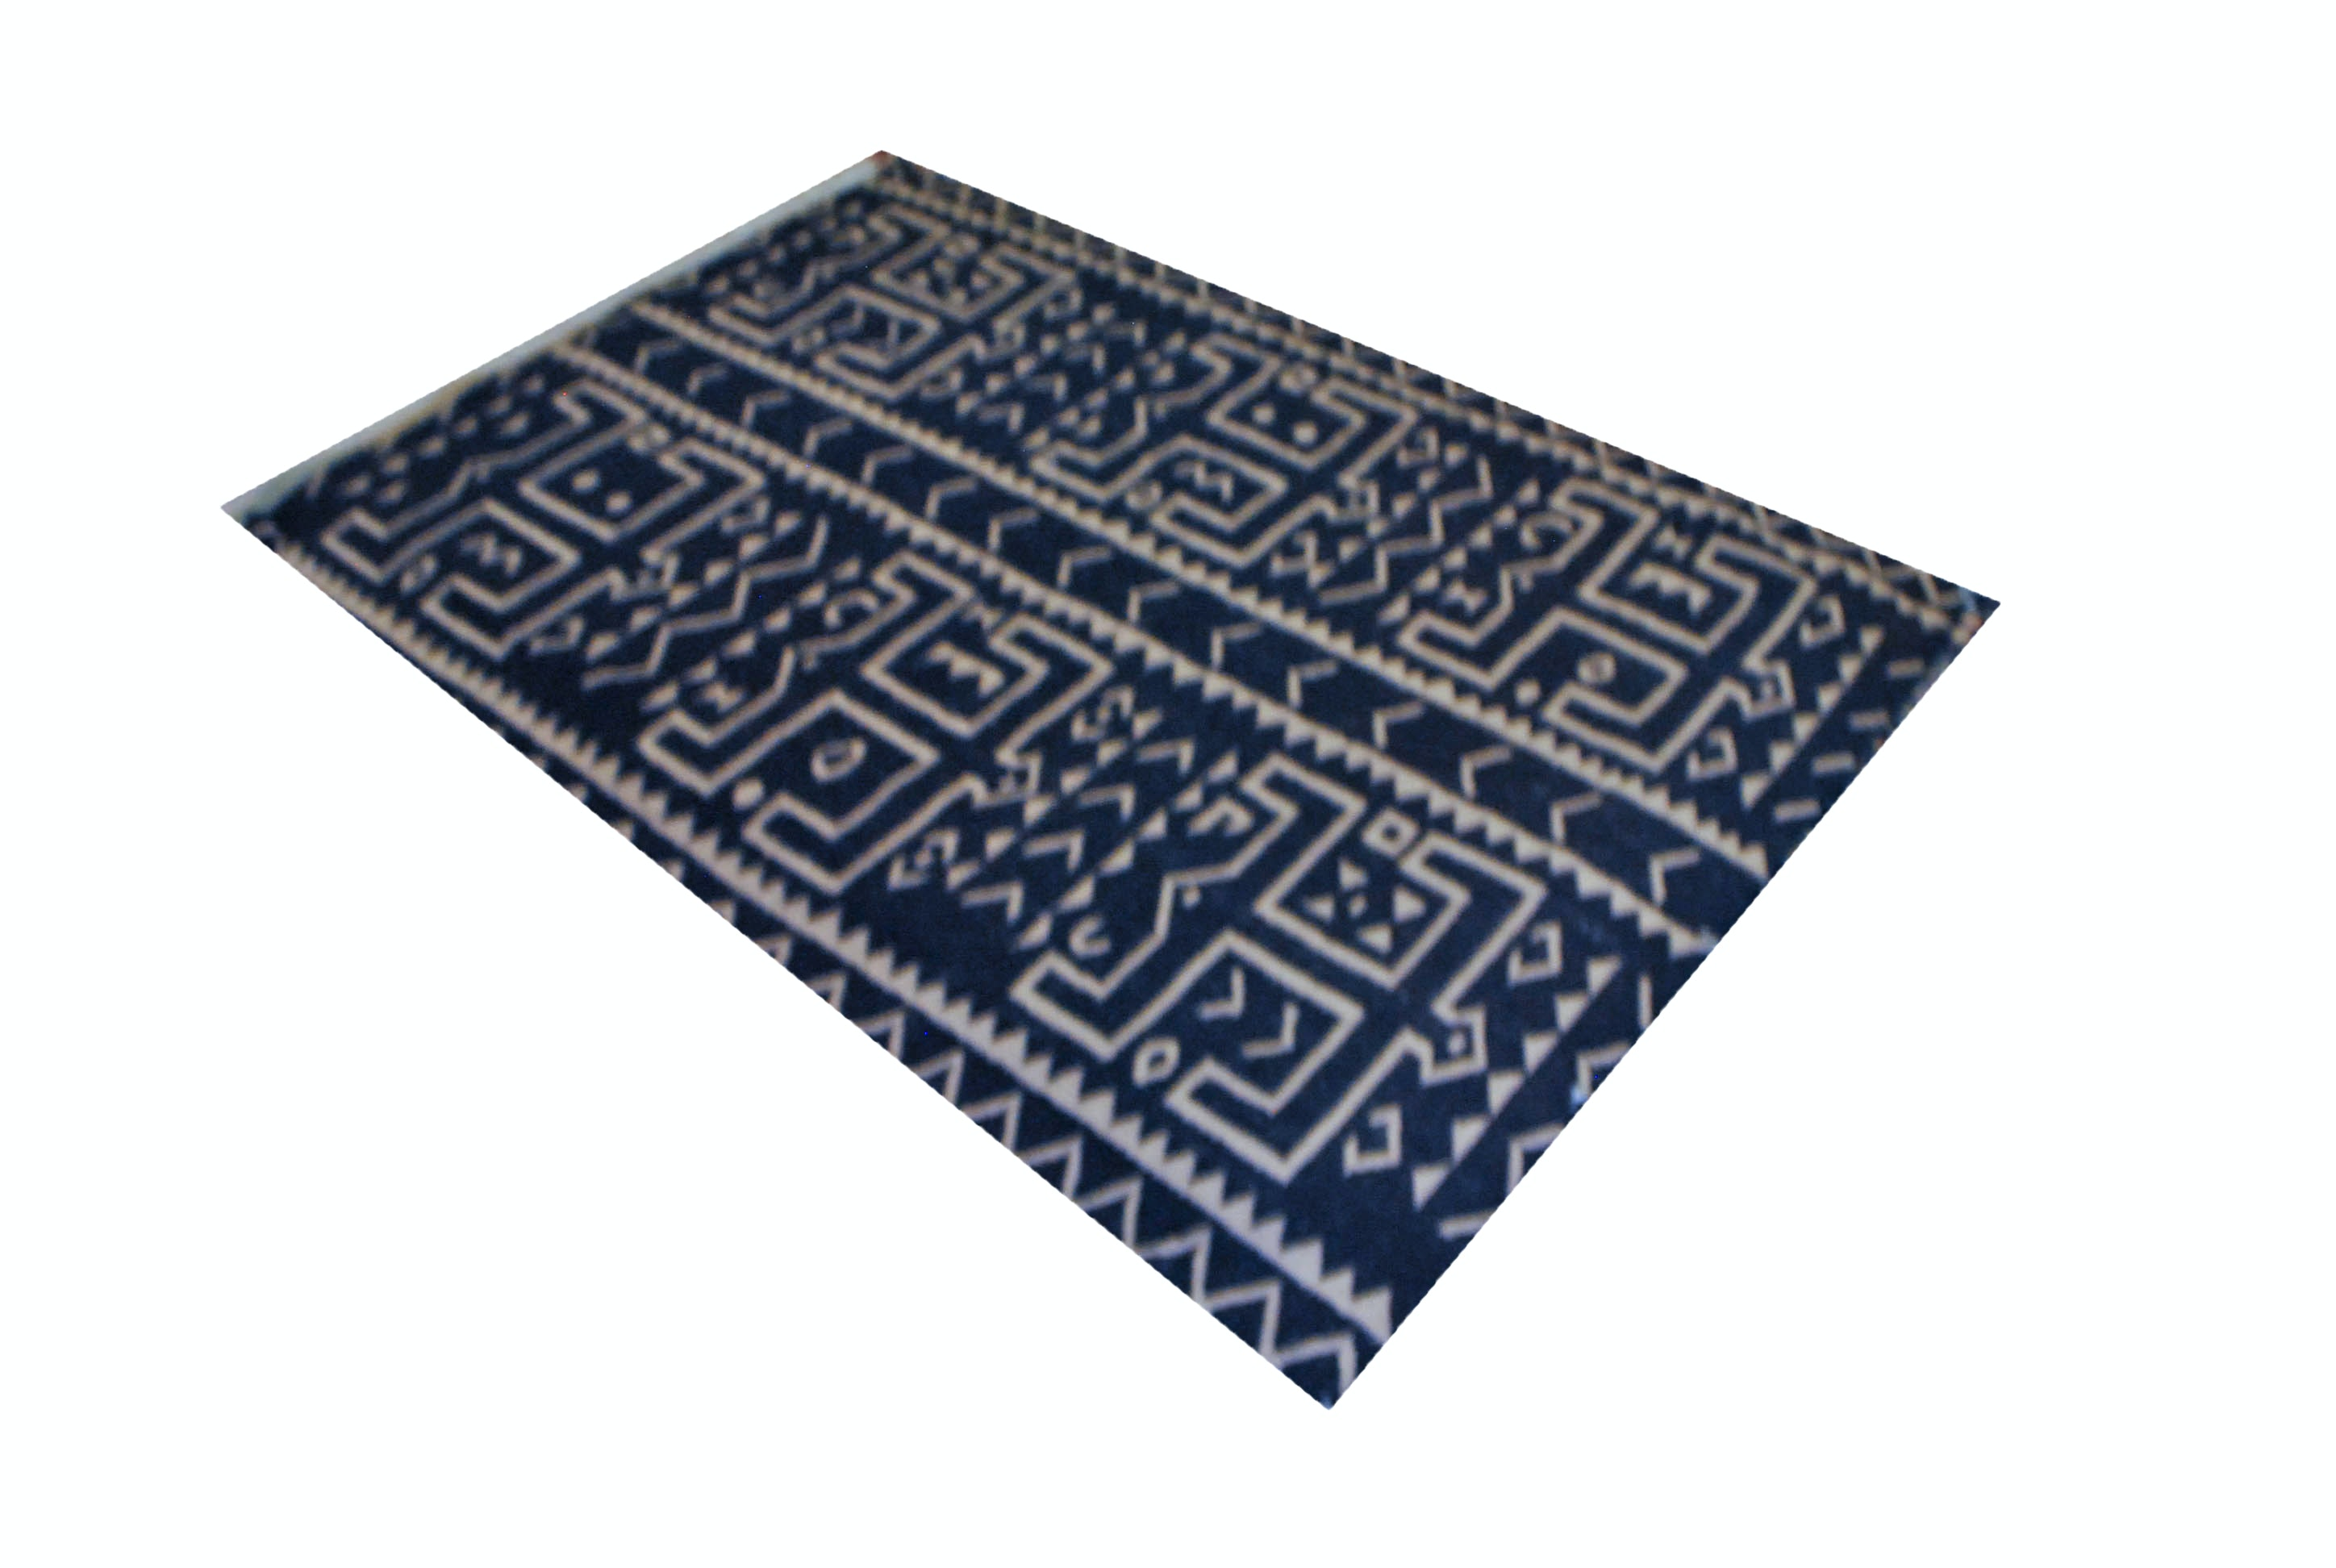 Handwoven Kilim Area Rug in Navy Blue and Cream